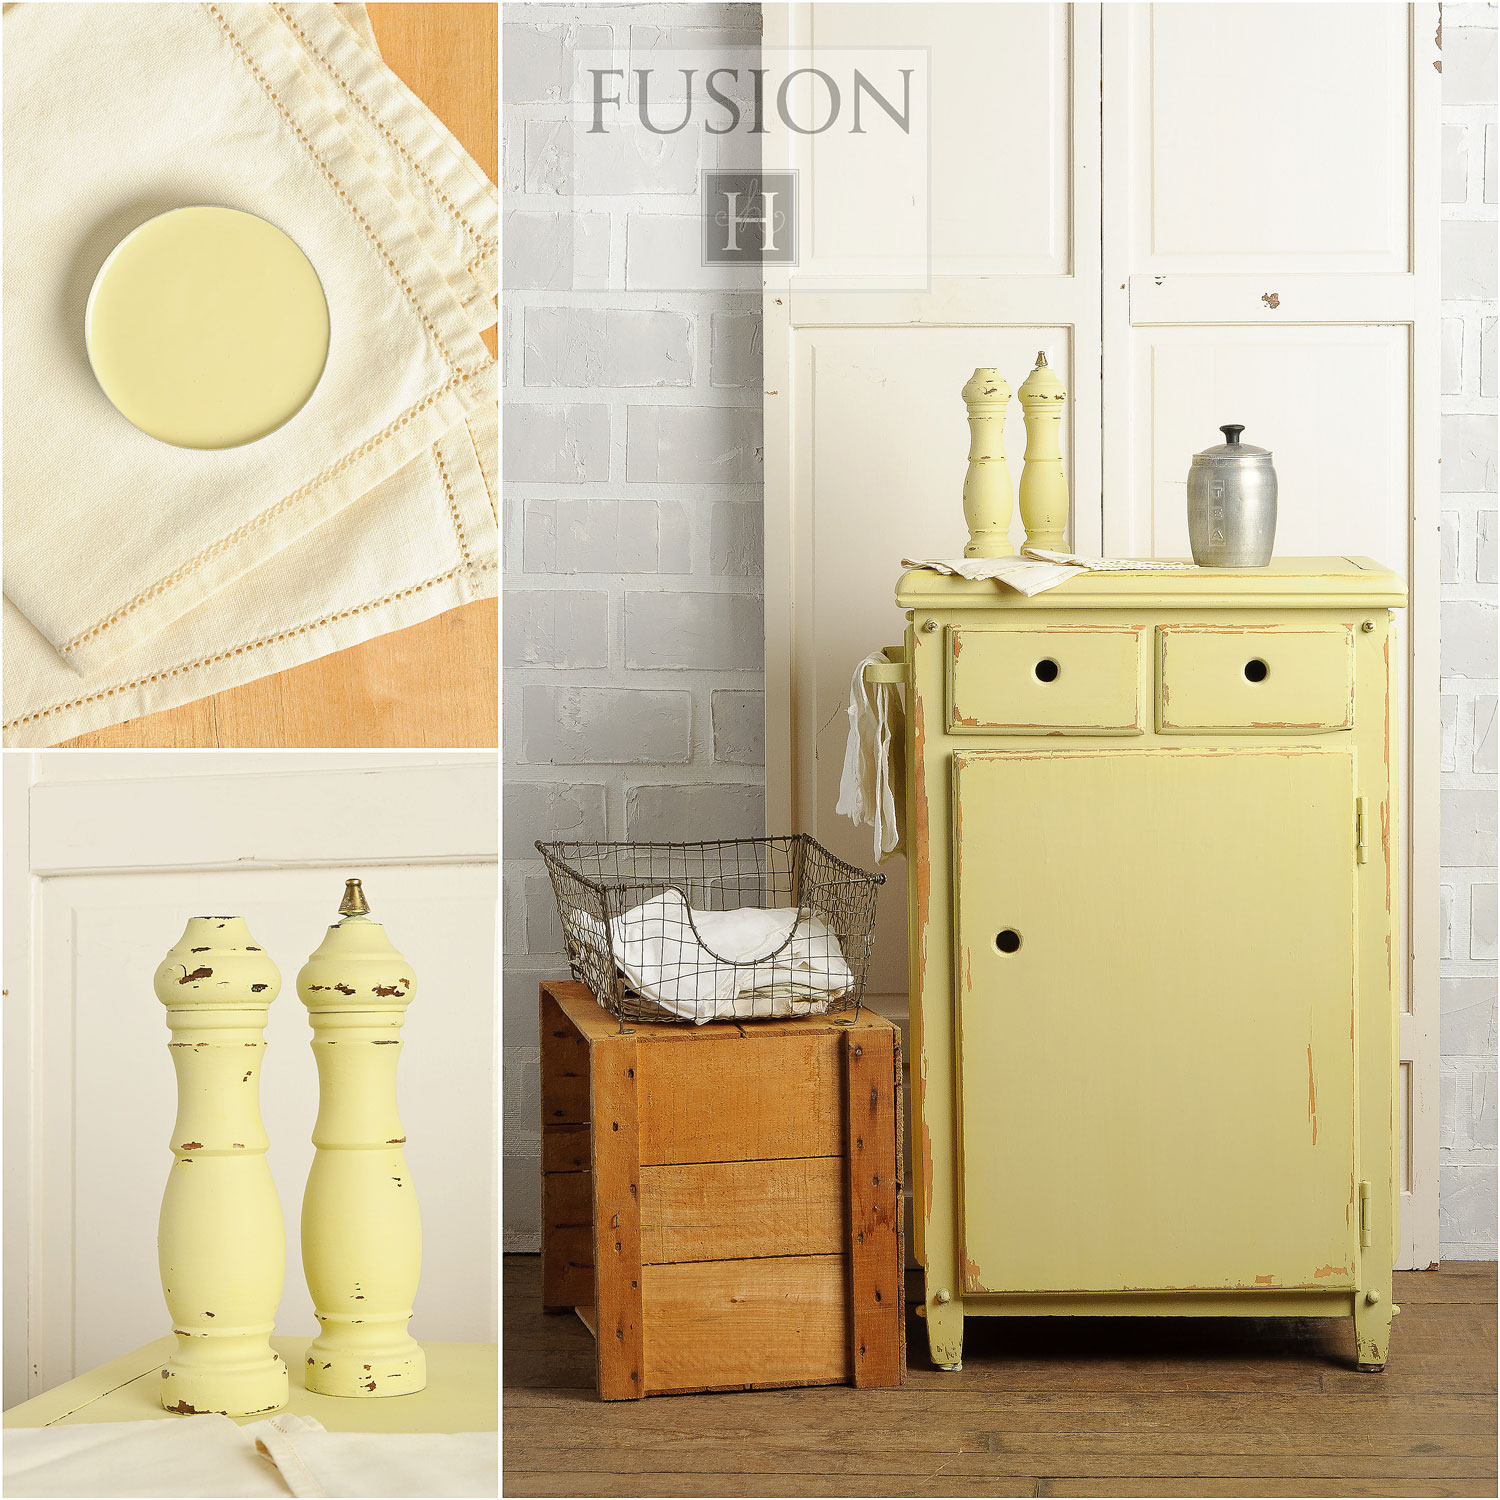 Fusion paint in aubusson - via My Painted Door (.com)